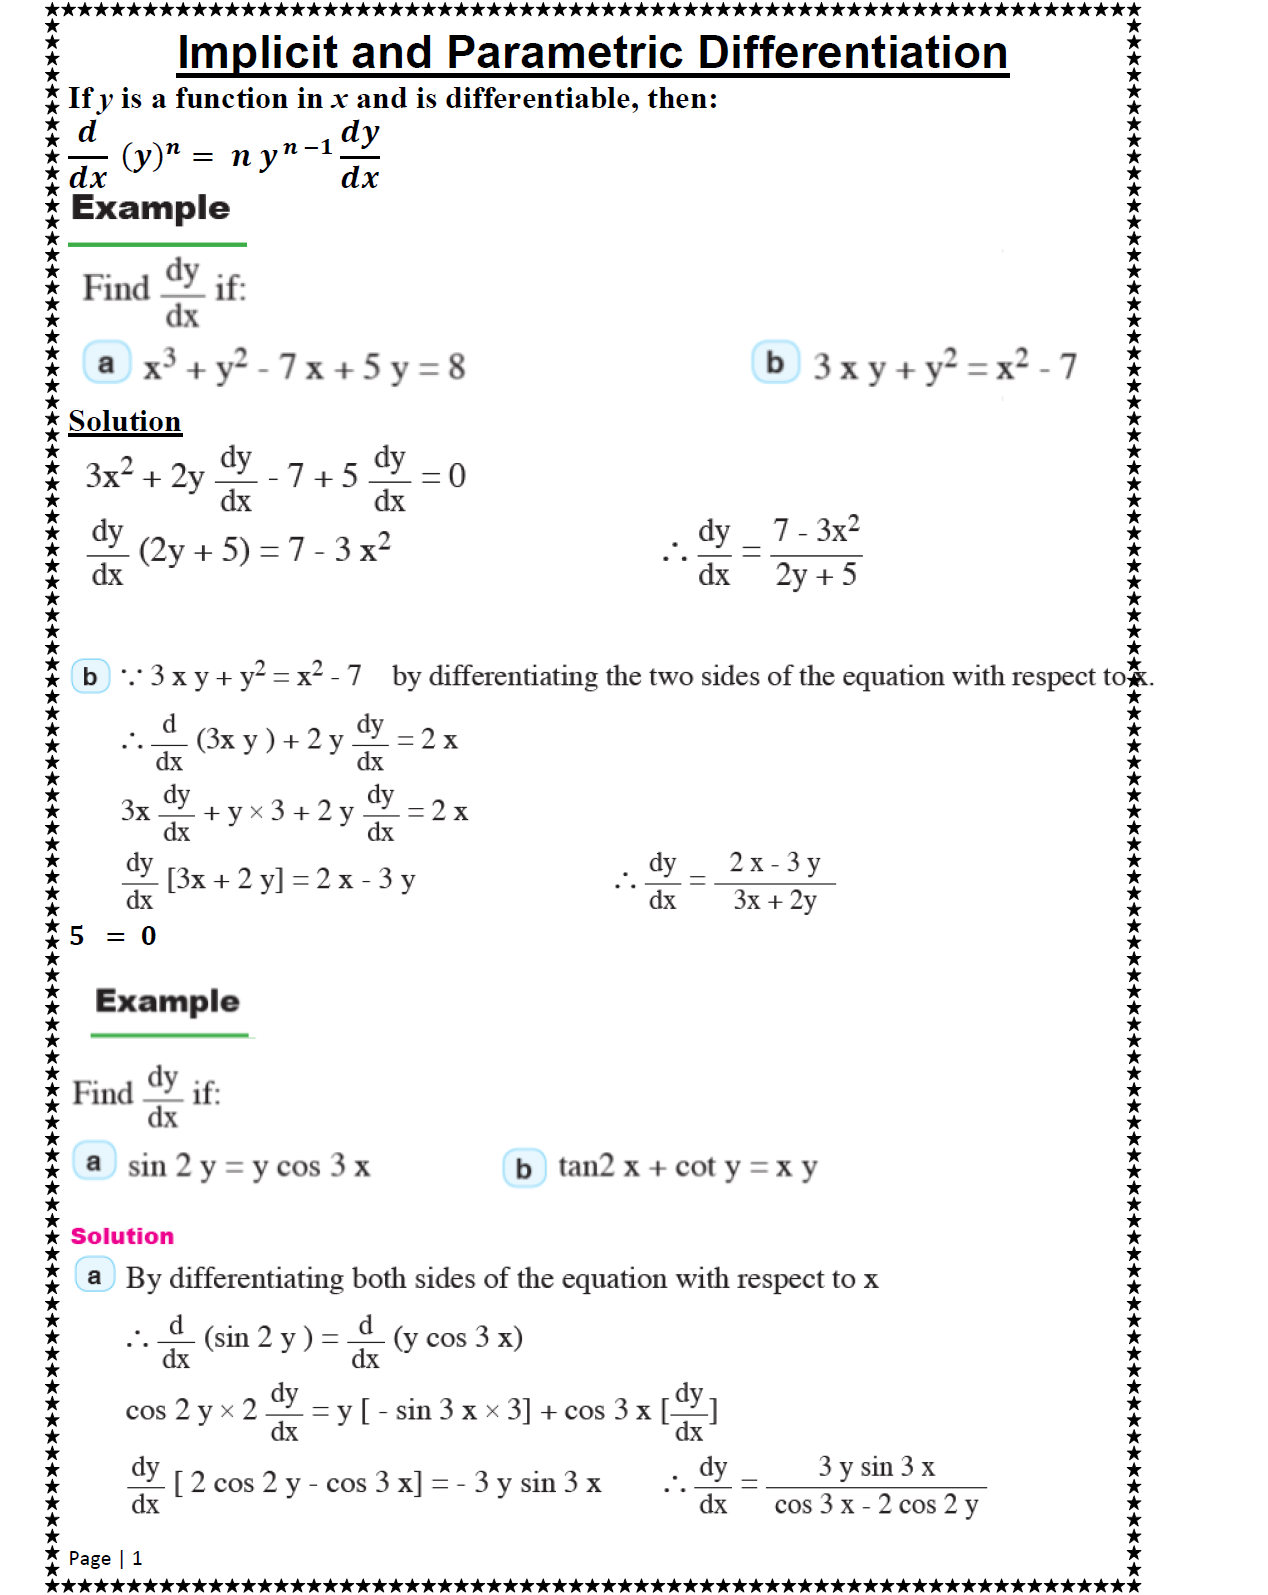 General Maths Implicit And Parametric Differentiation